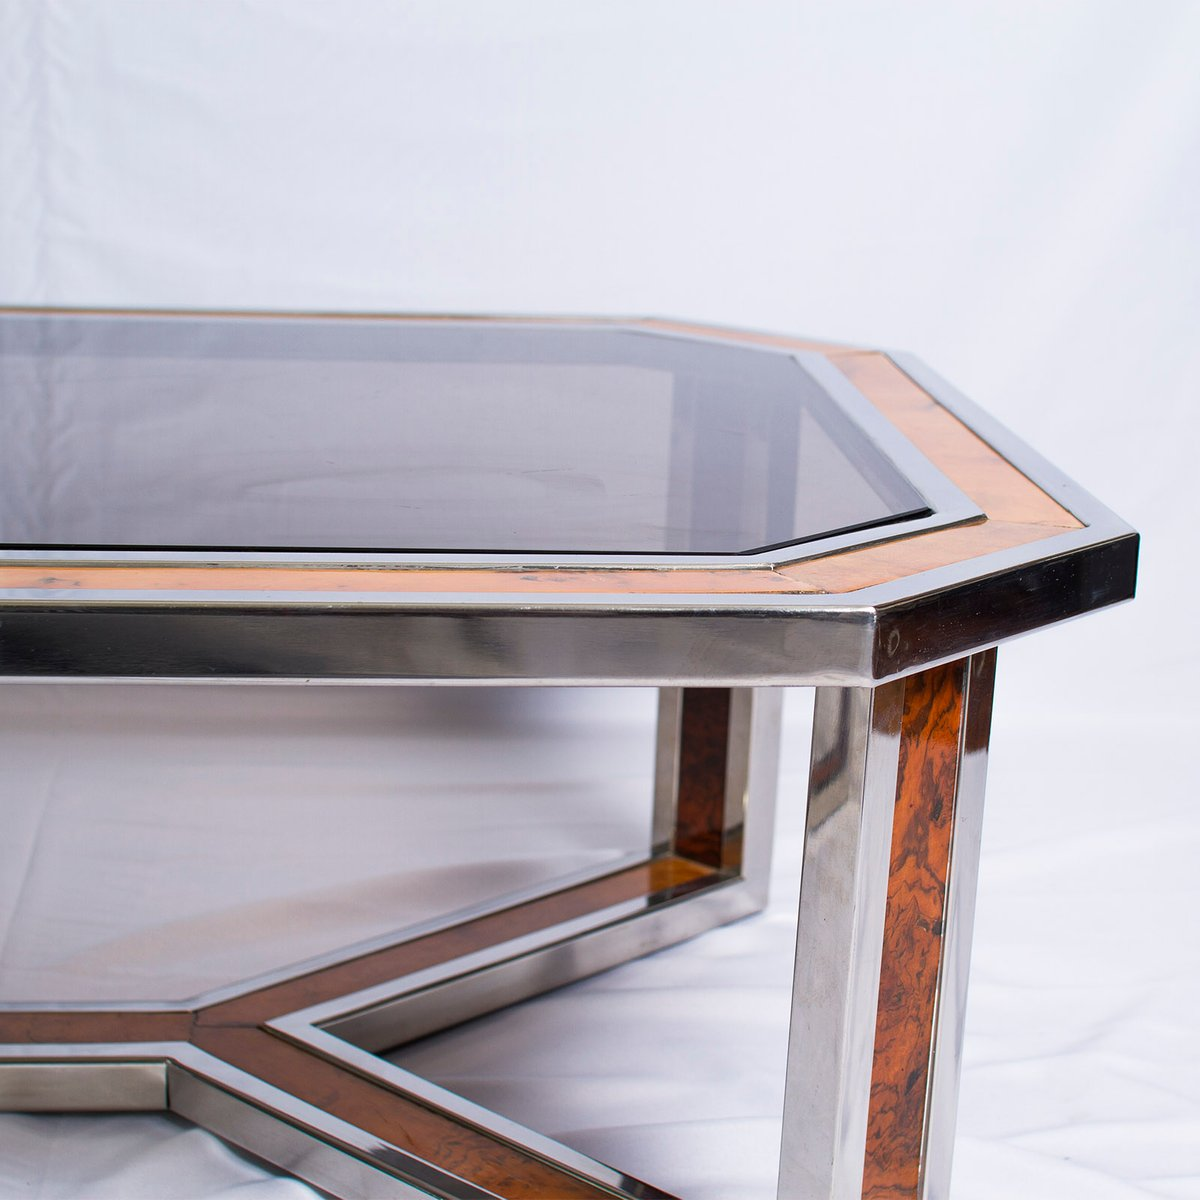 Chrome Coffee Table With Wood Top: Chrome And Wood Coffee Table By Romeo Rega, 1970s For Sale